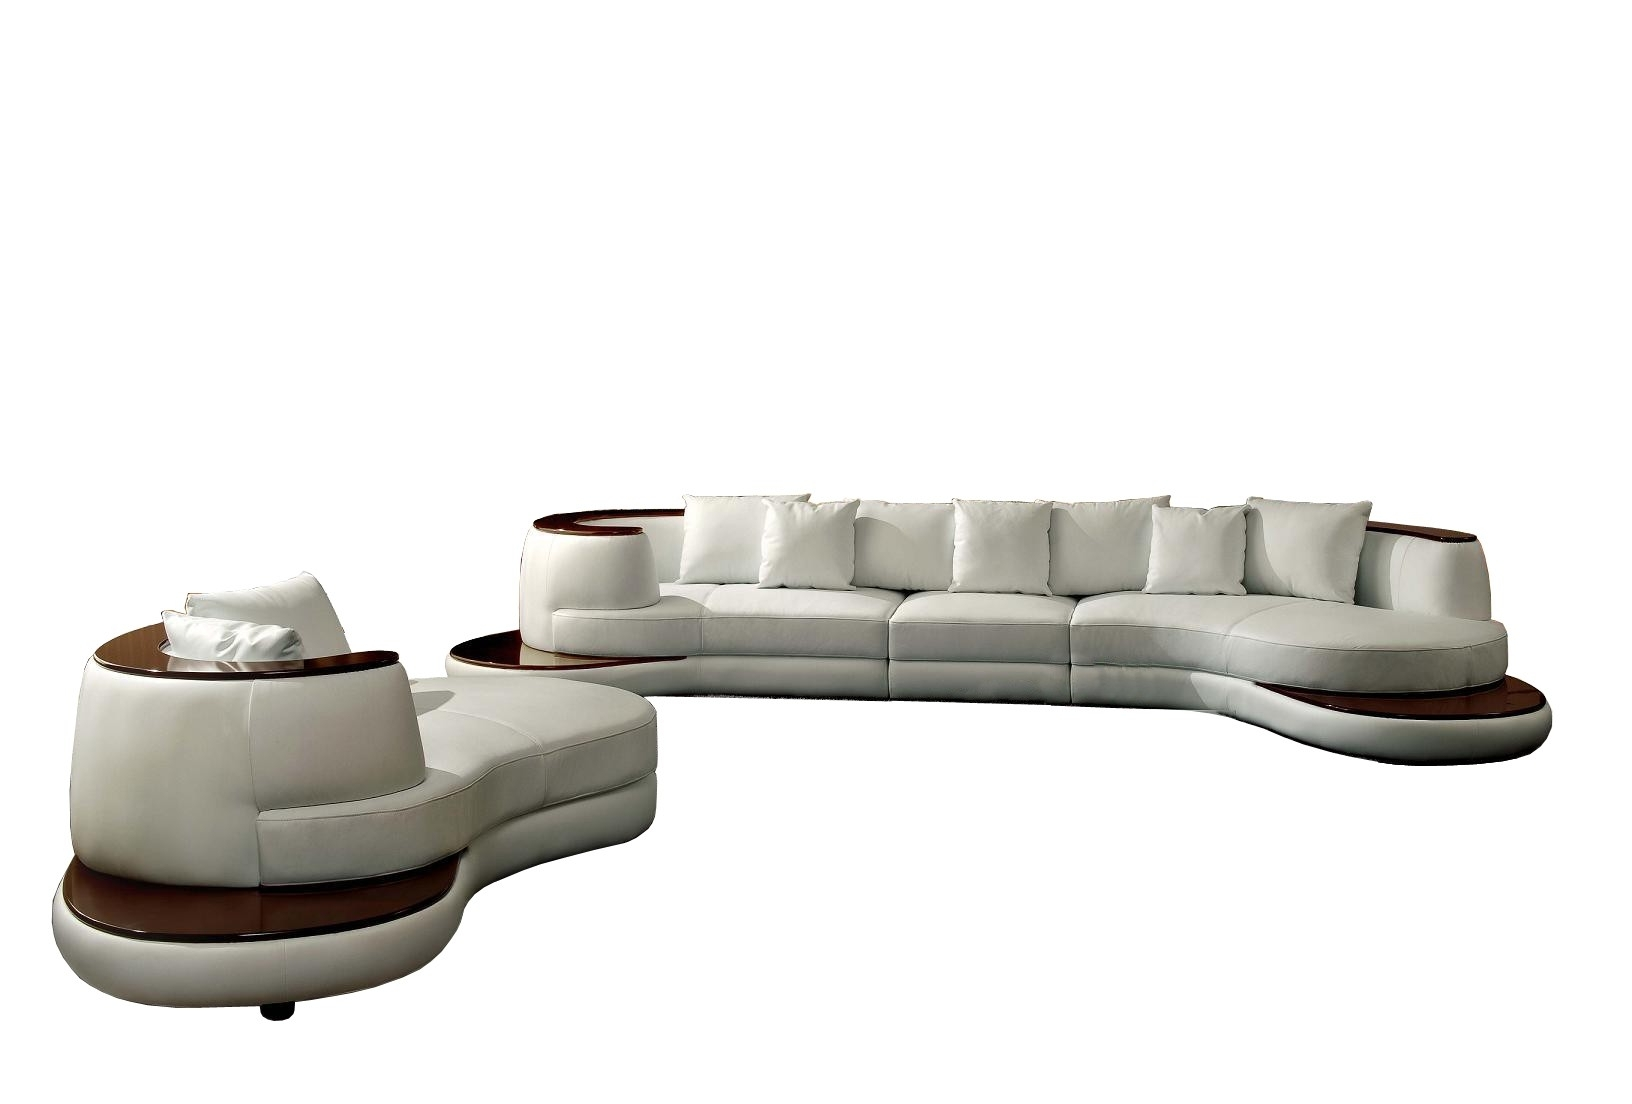 Popular Rounded Sofas Within Divani Casa Rodus – Rounded Corner Leather Sectional Sofa With (View 13 of 20)